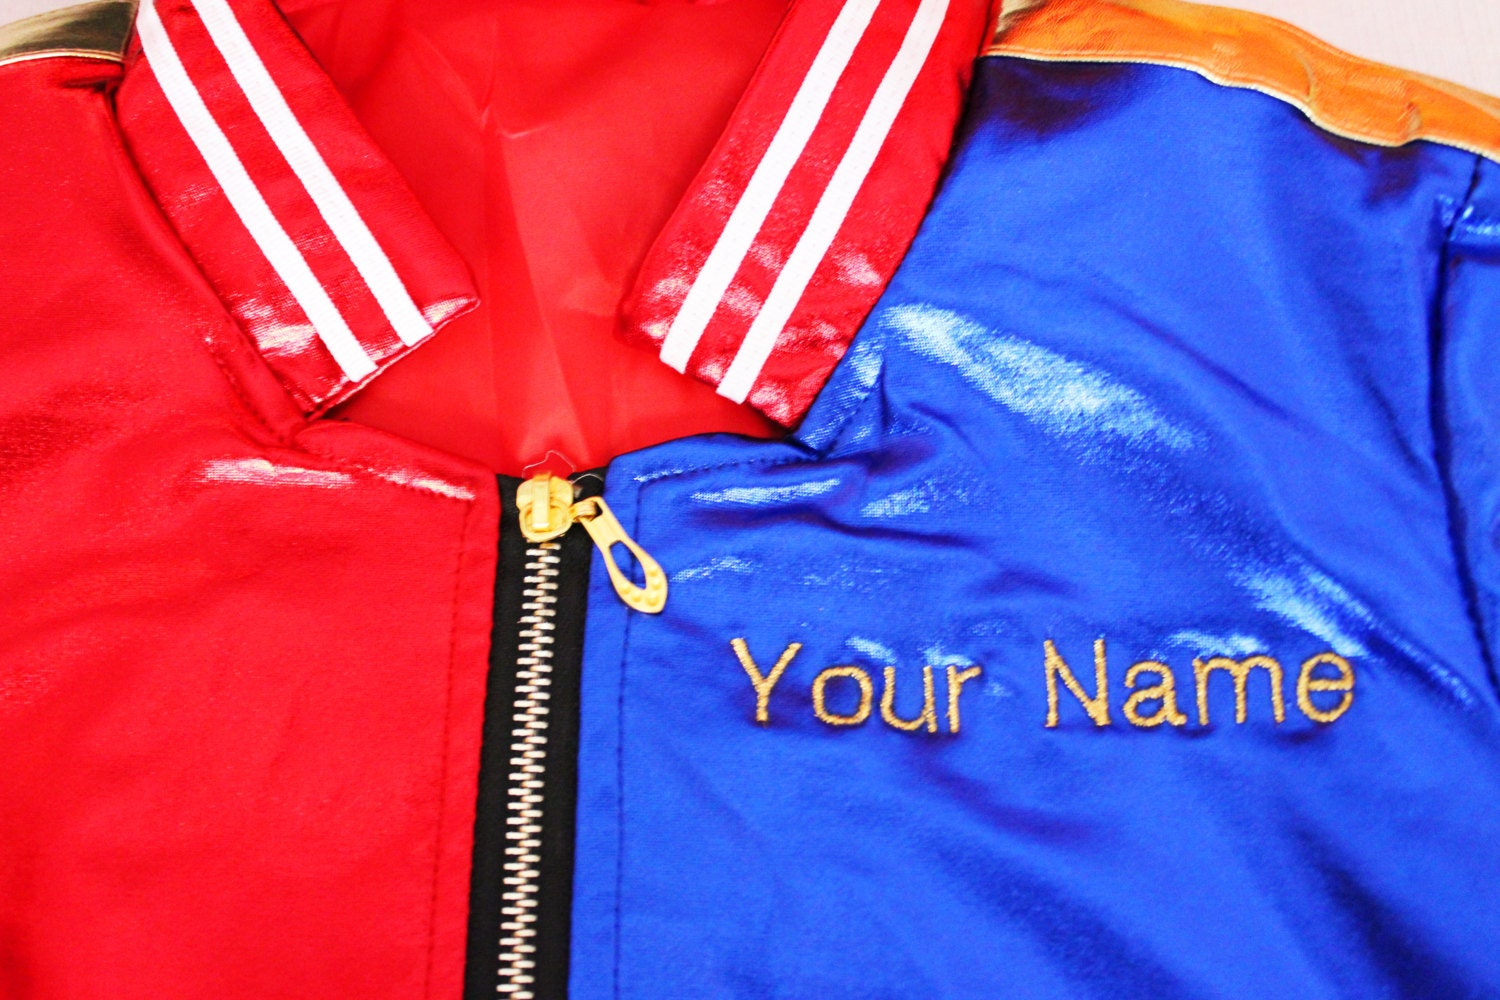 Harley quinn costume jacket personalized embroidered